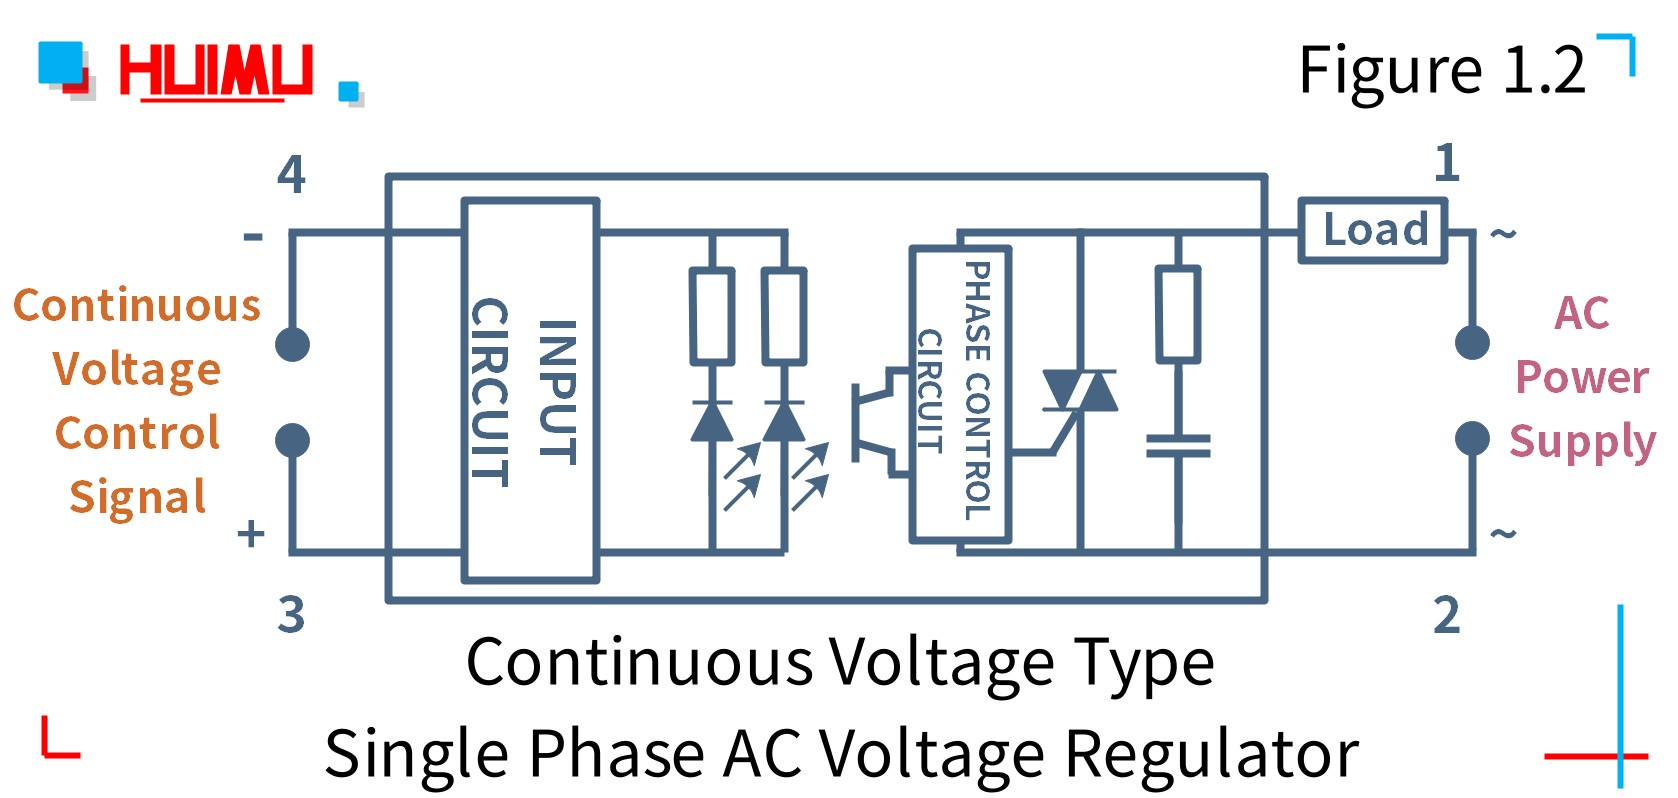 How to wire MGR mager MGR-1VD2440G analog signal type single phase AC voltage regulator? More detail via www.@huimultd.com